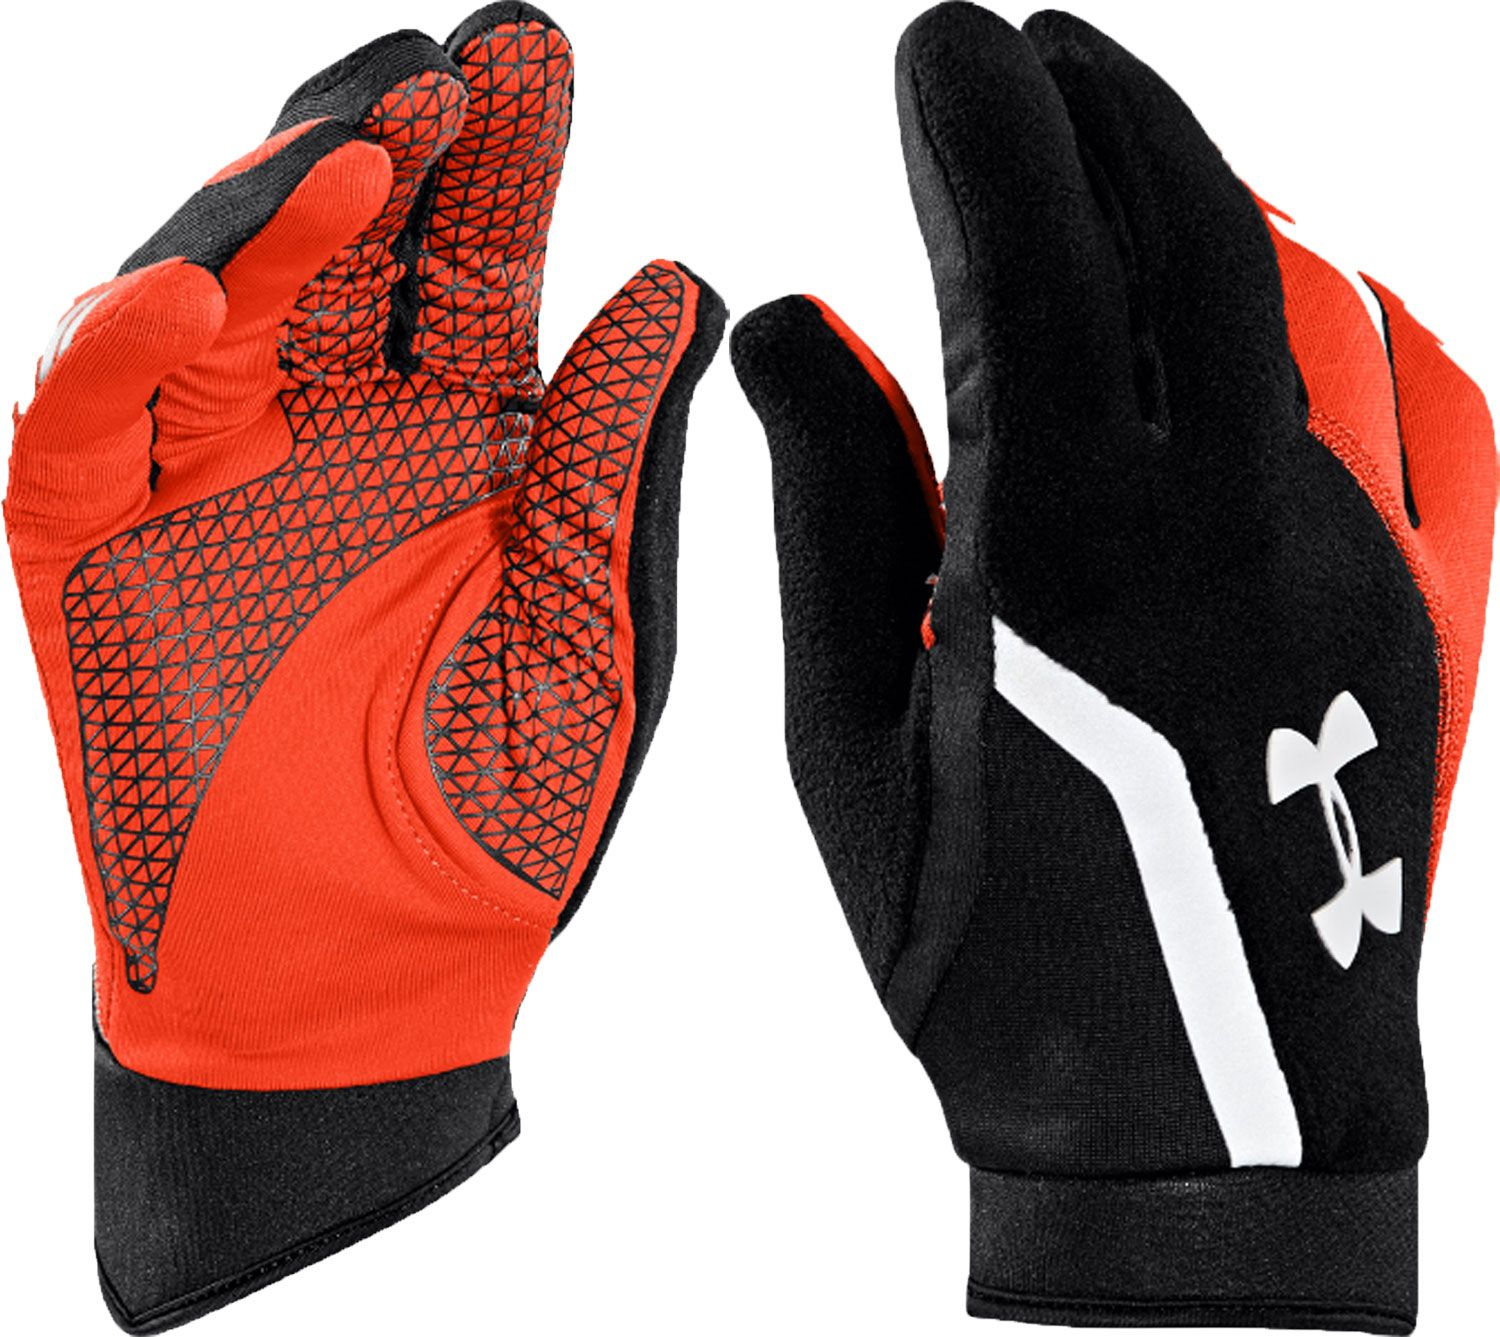 Image result for under armour running gloves